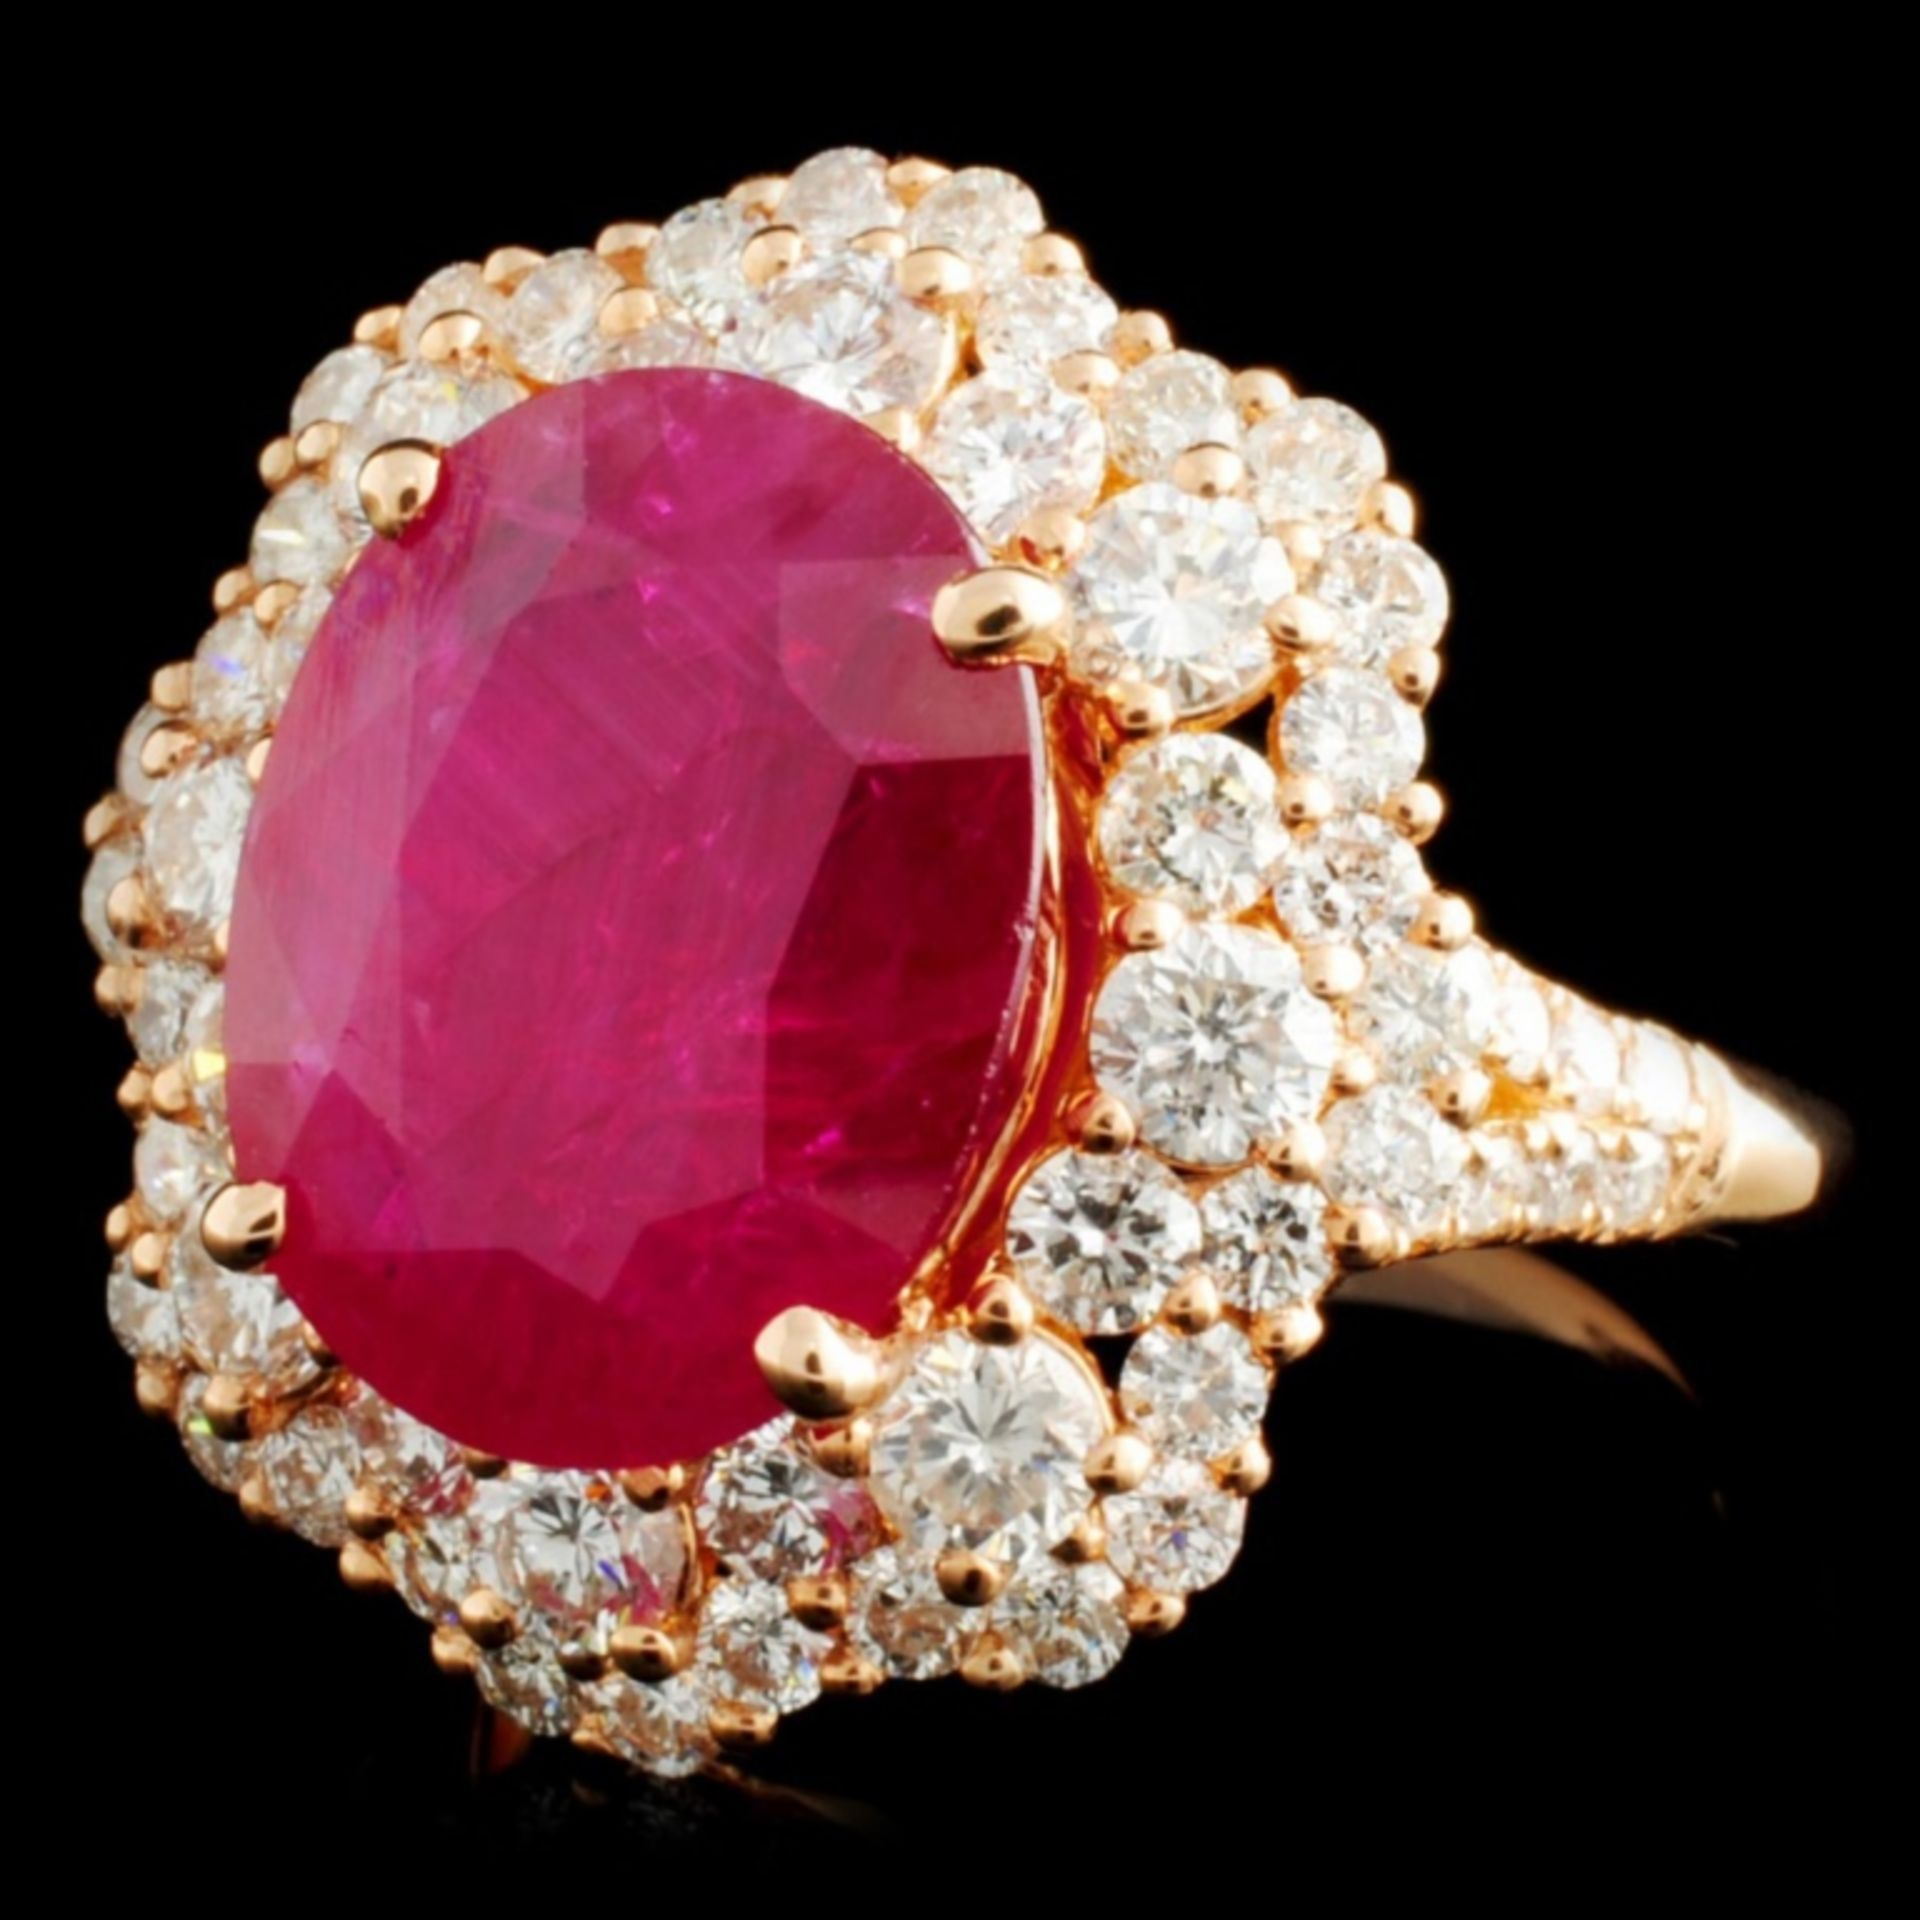 18K Gold 5.67ct Ruby & 2.08ctw Diamond Ring - Image 2 of 4